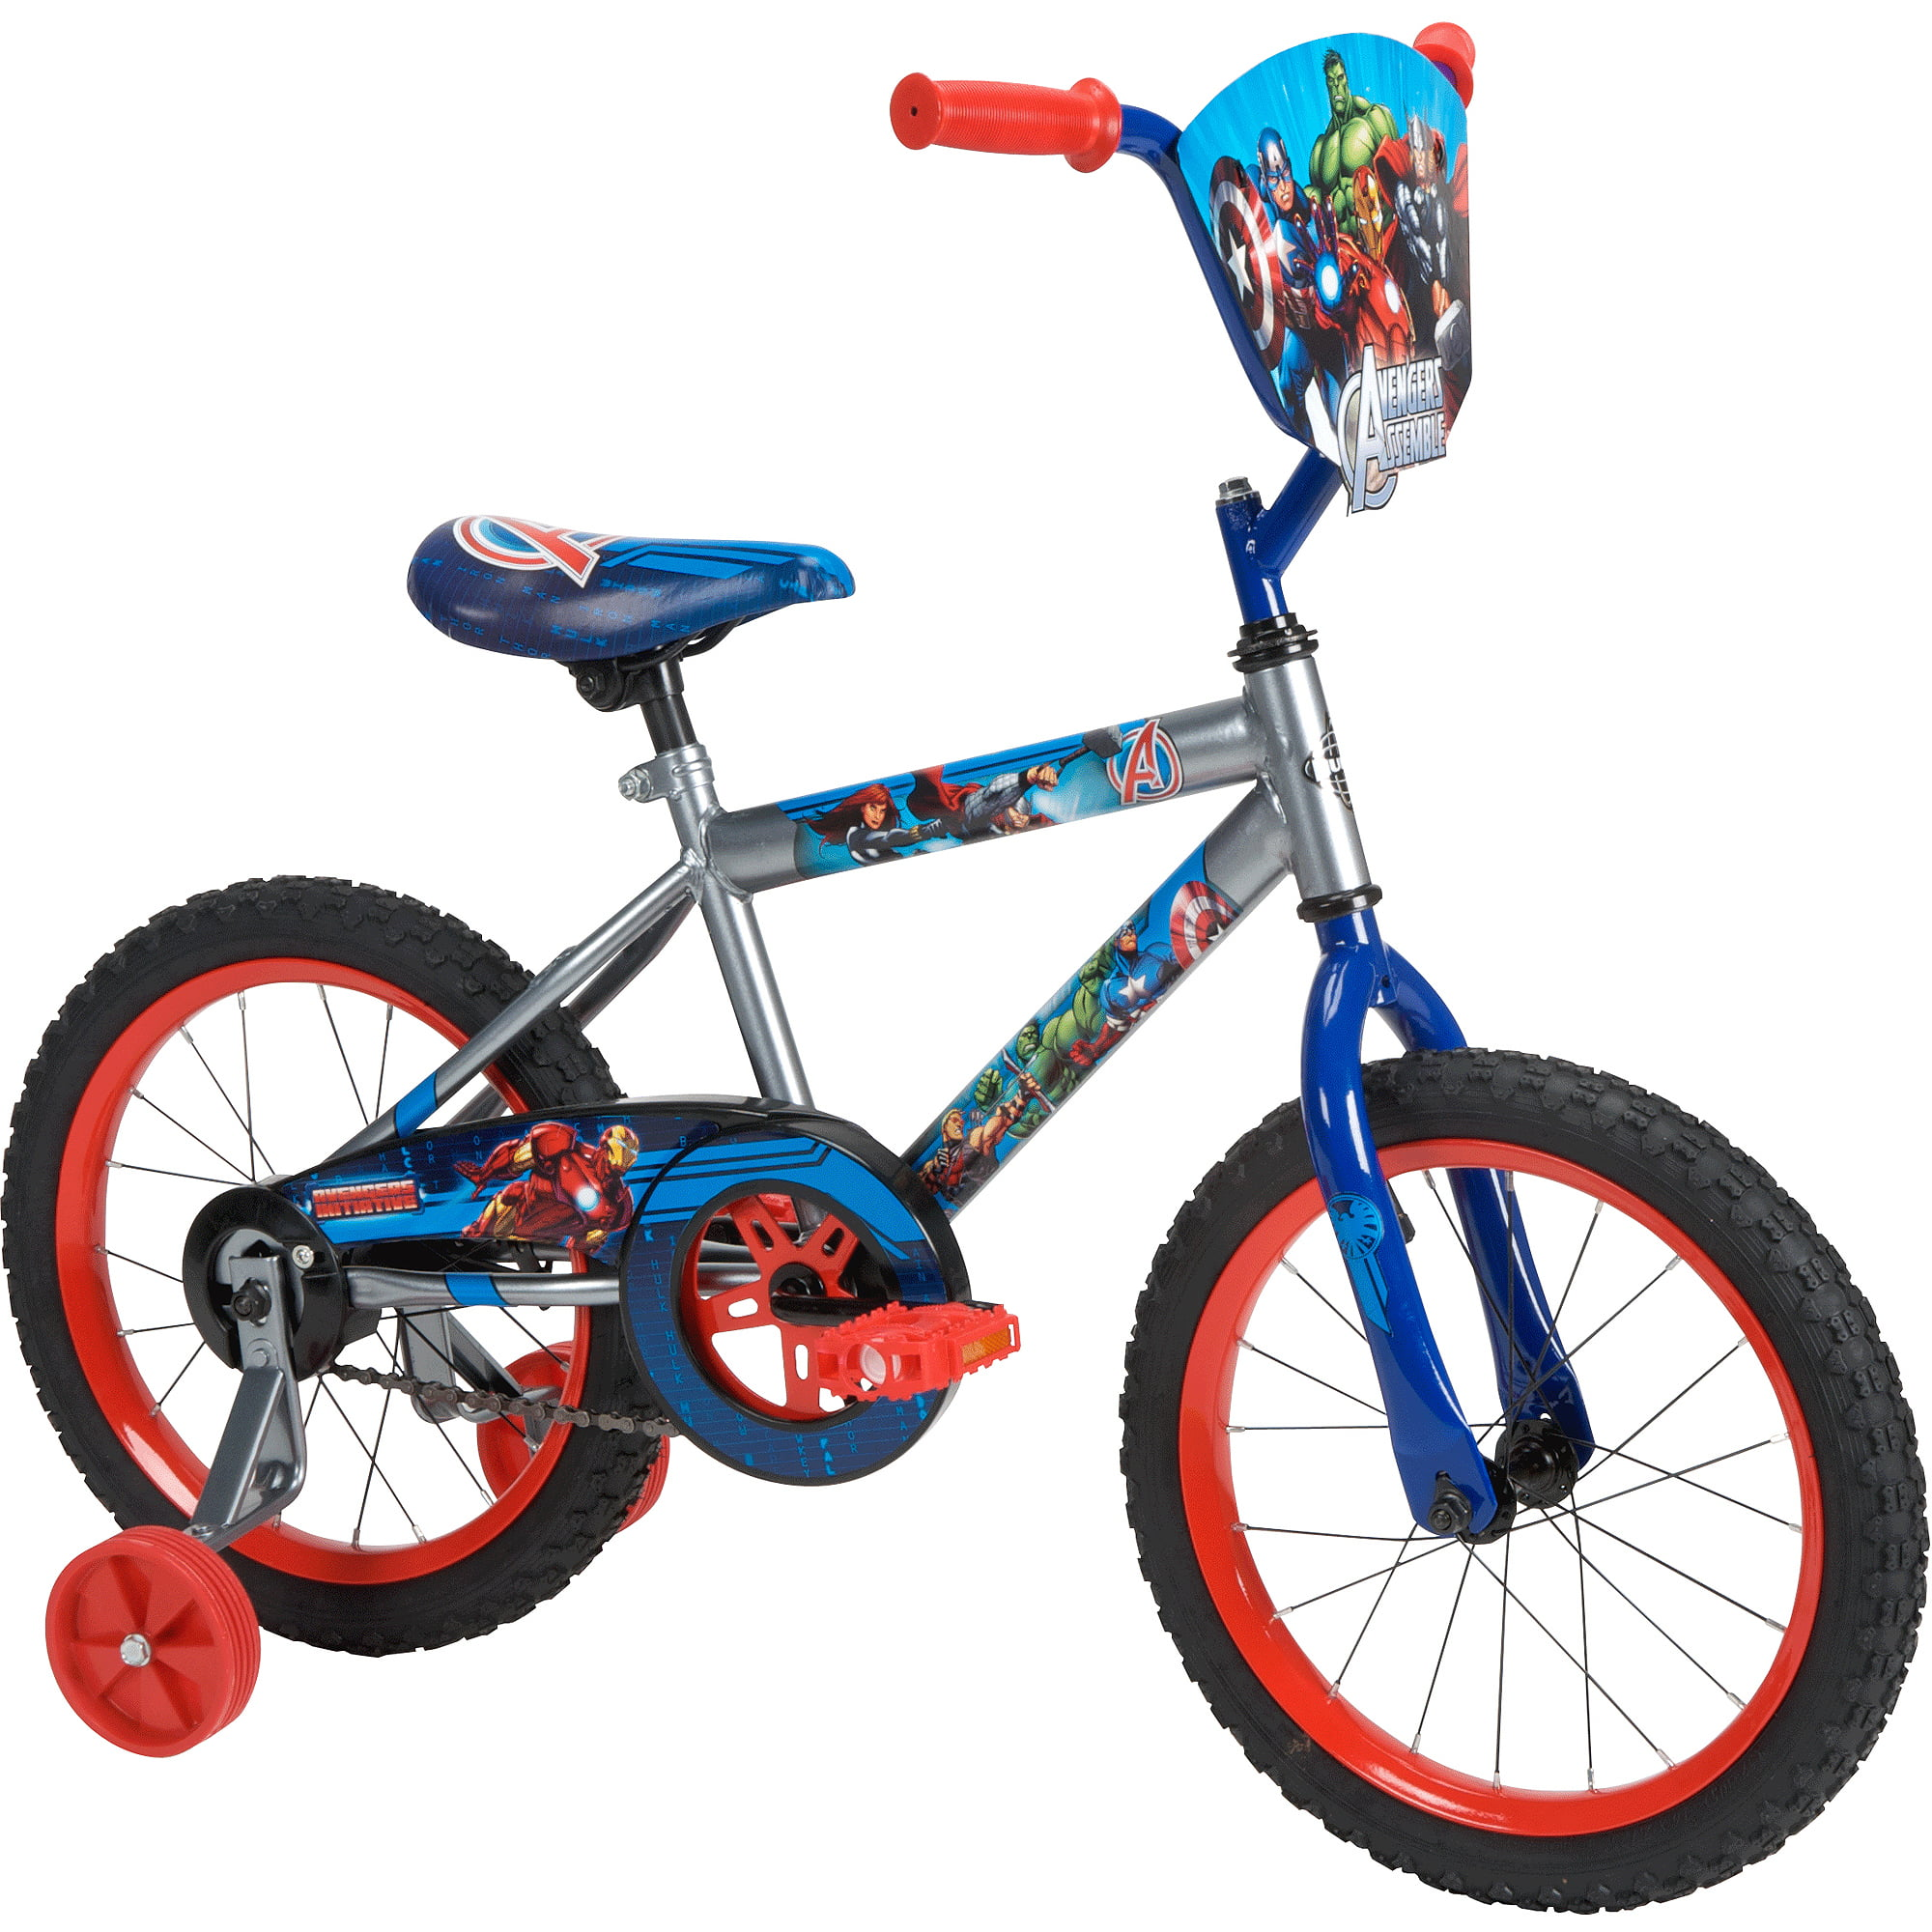 Bikes with Training Wheels